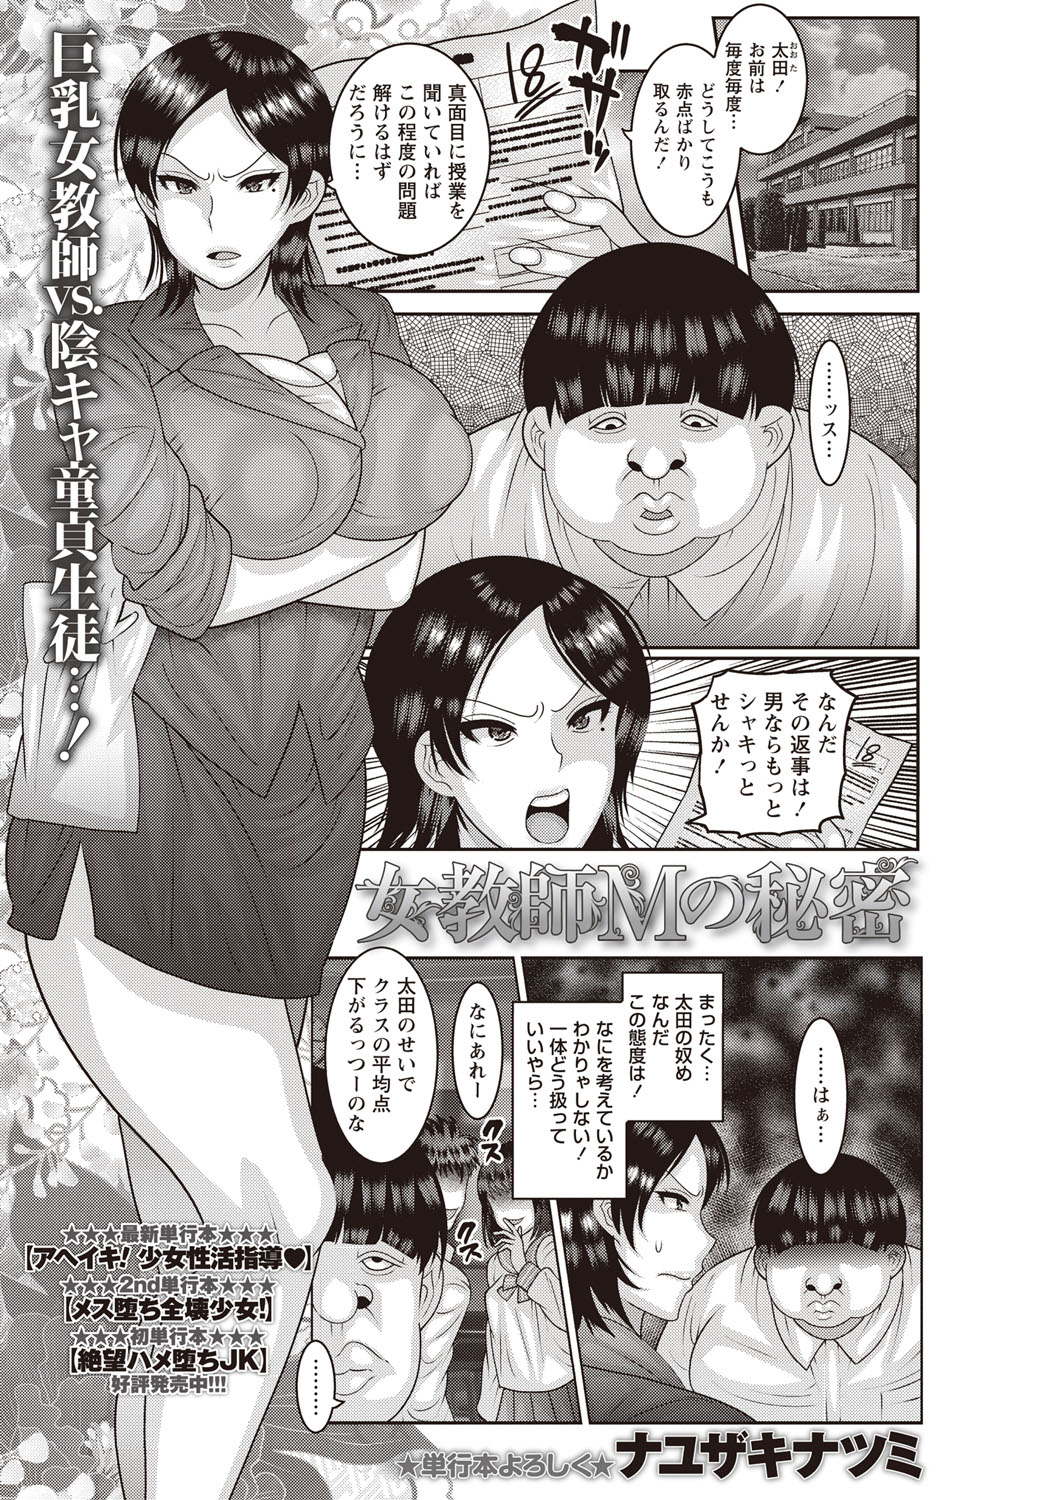 【エロ漫画】爆乳女教師が生徒に脅されてセックスを。元AV女優だったのがバレて、ひょっとこフェラでおチンポをしゃぶらされ、陰毛マンコは極太チンコに犯されアヘイキしちゃう